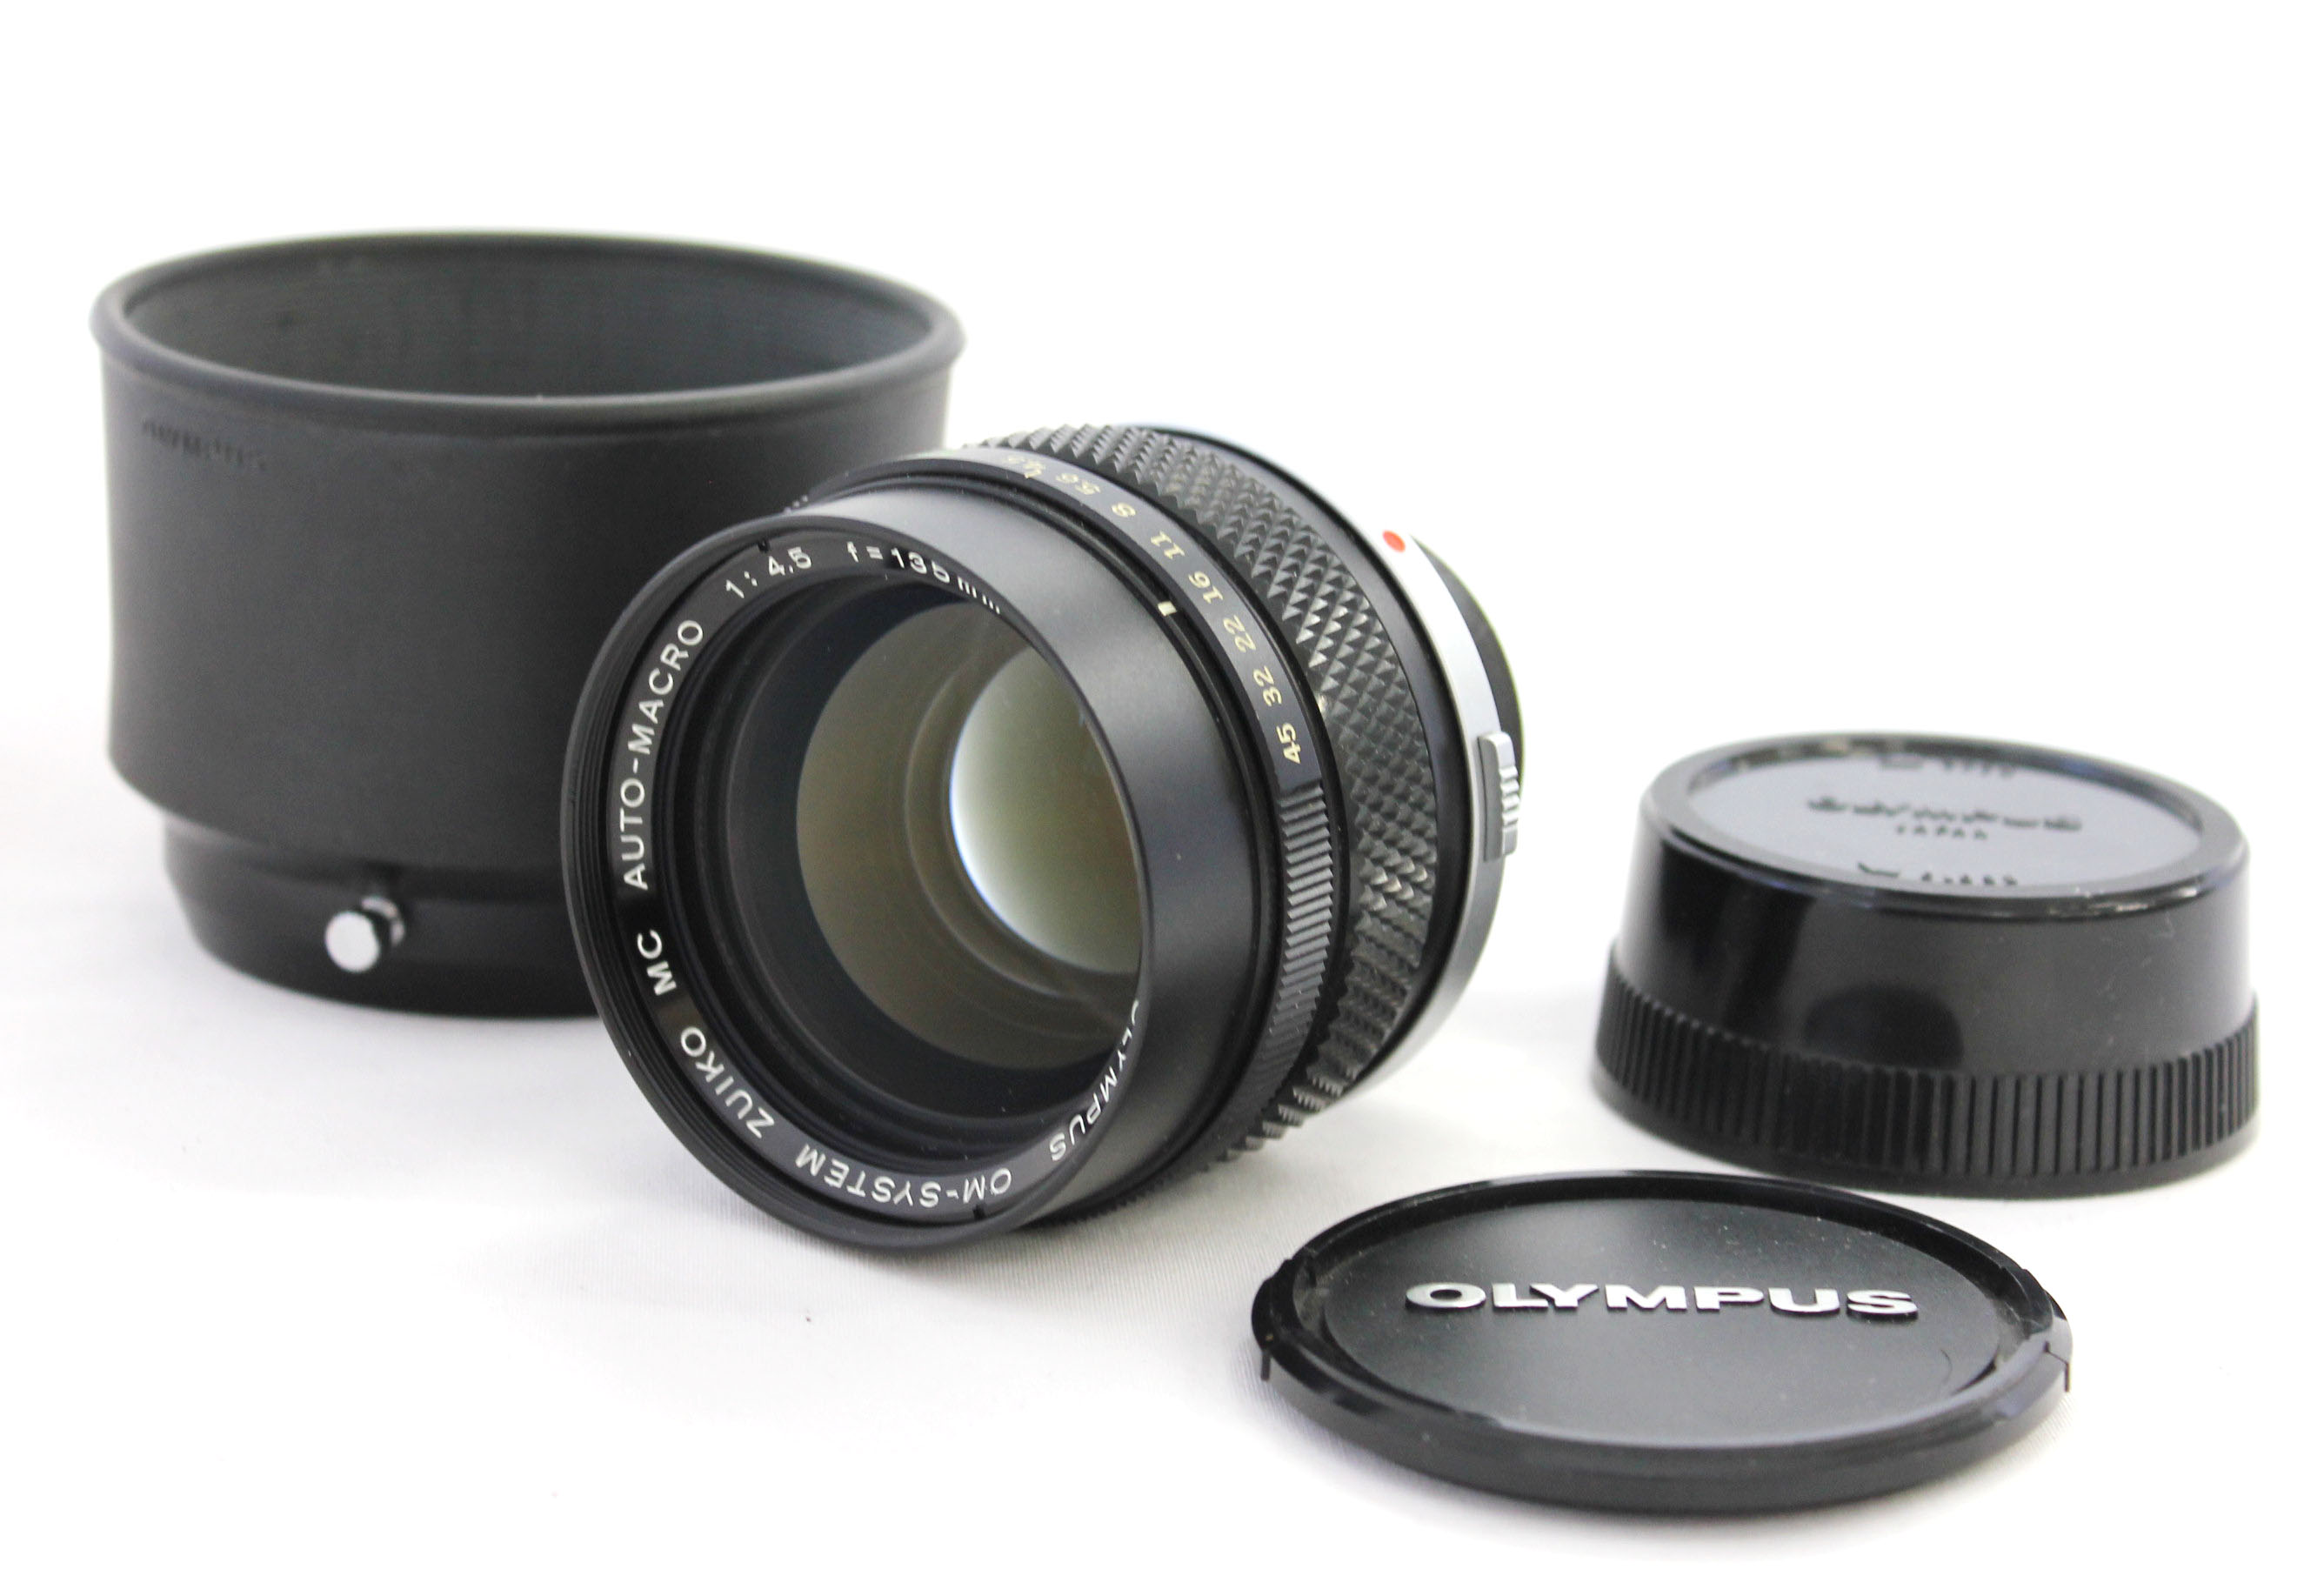 Japan Used Camera Shop | [Near Mint] Olympus OM-System Zuiko MC Auto-Macro 135mm F/4.5 Lens with Hood from Japan